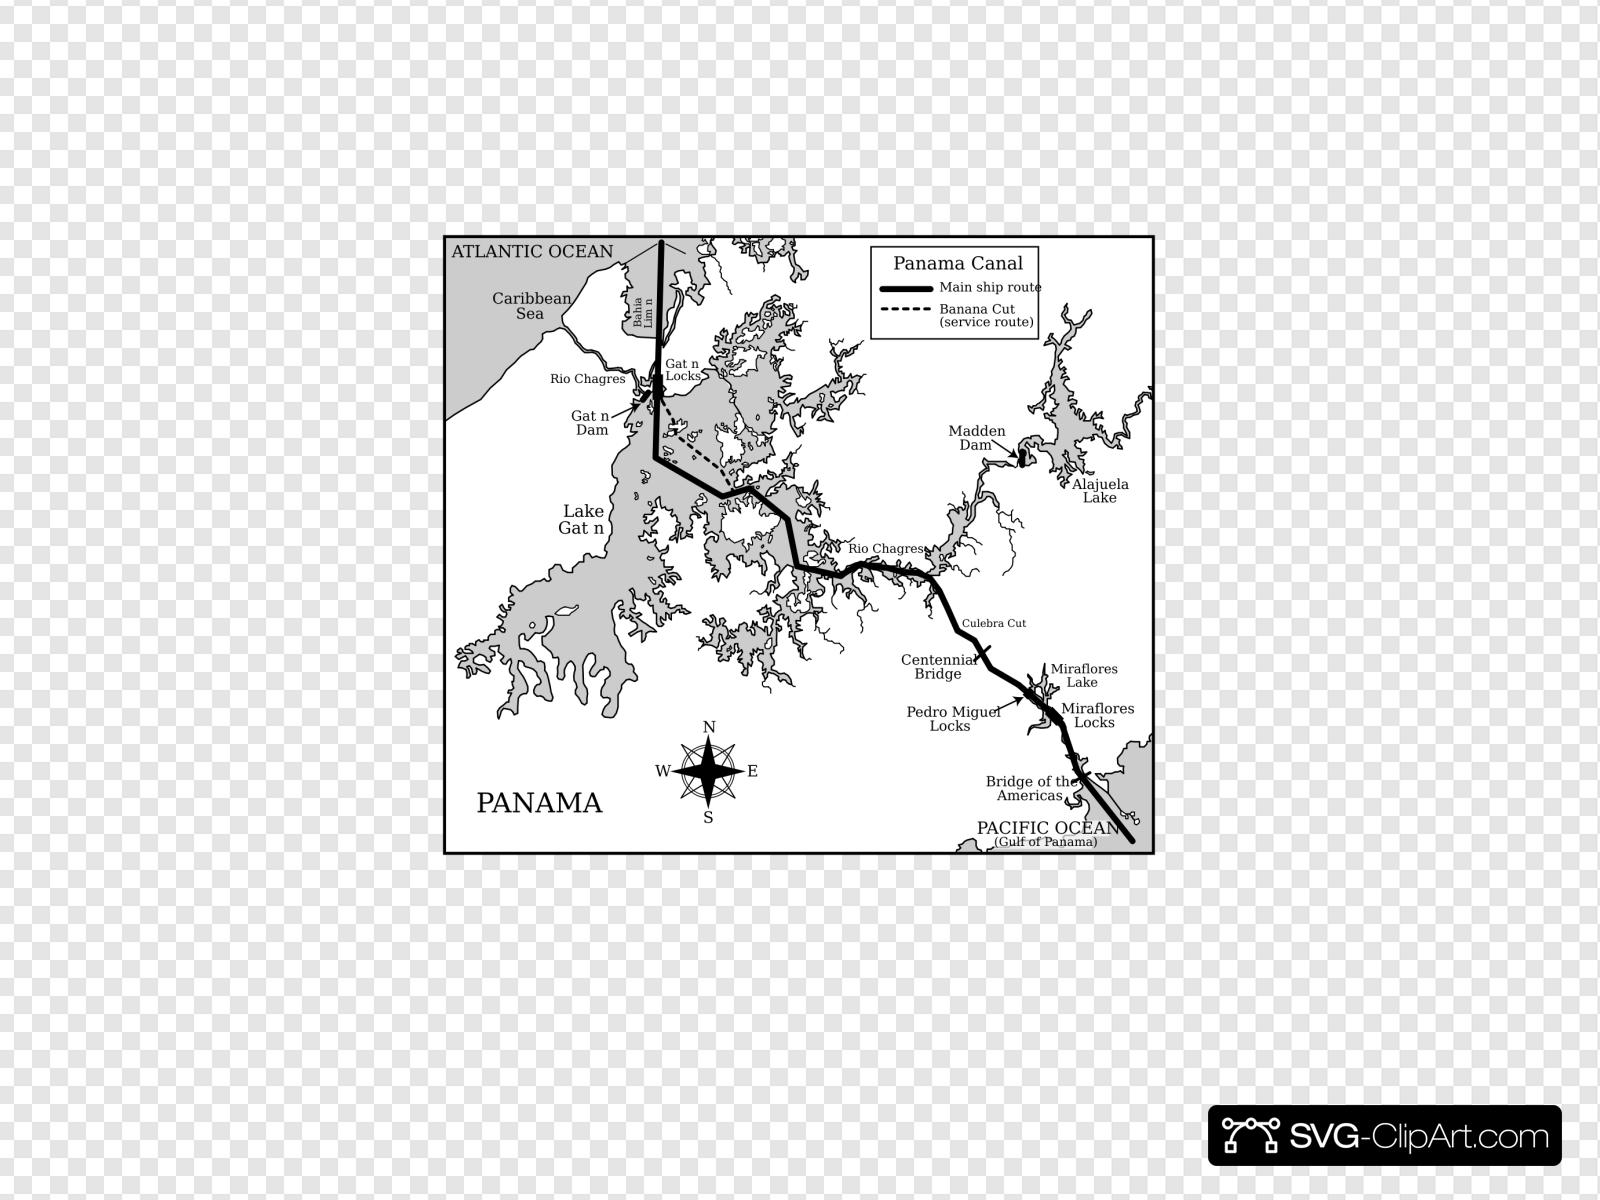 Panama canal locks clipart vector black and white library Panama Canal Clip art, Icon and SVG - SVG Clipart vector black and white library